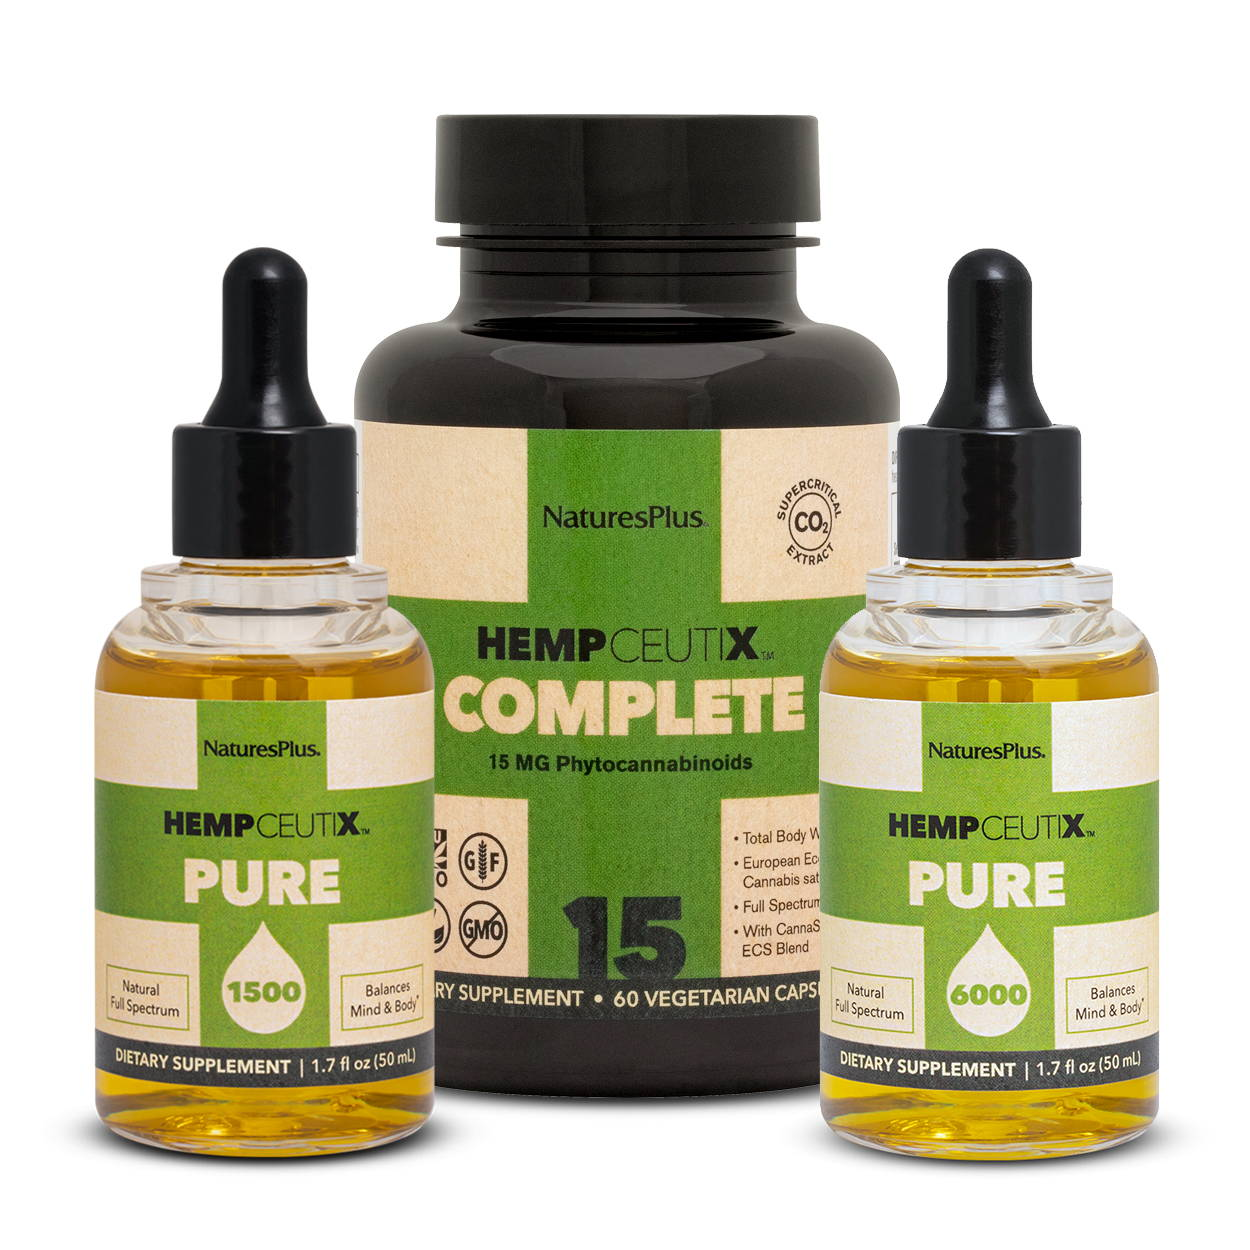 Premium stack image containing 1 bottle of Hempceutix Pure6000, 1 Pure 1500 and 1 bottle of Complete 15